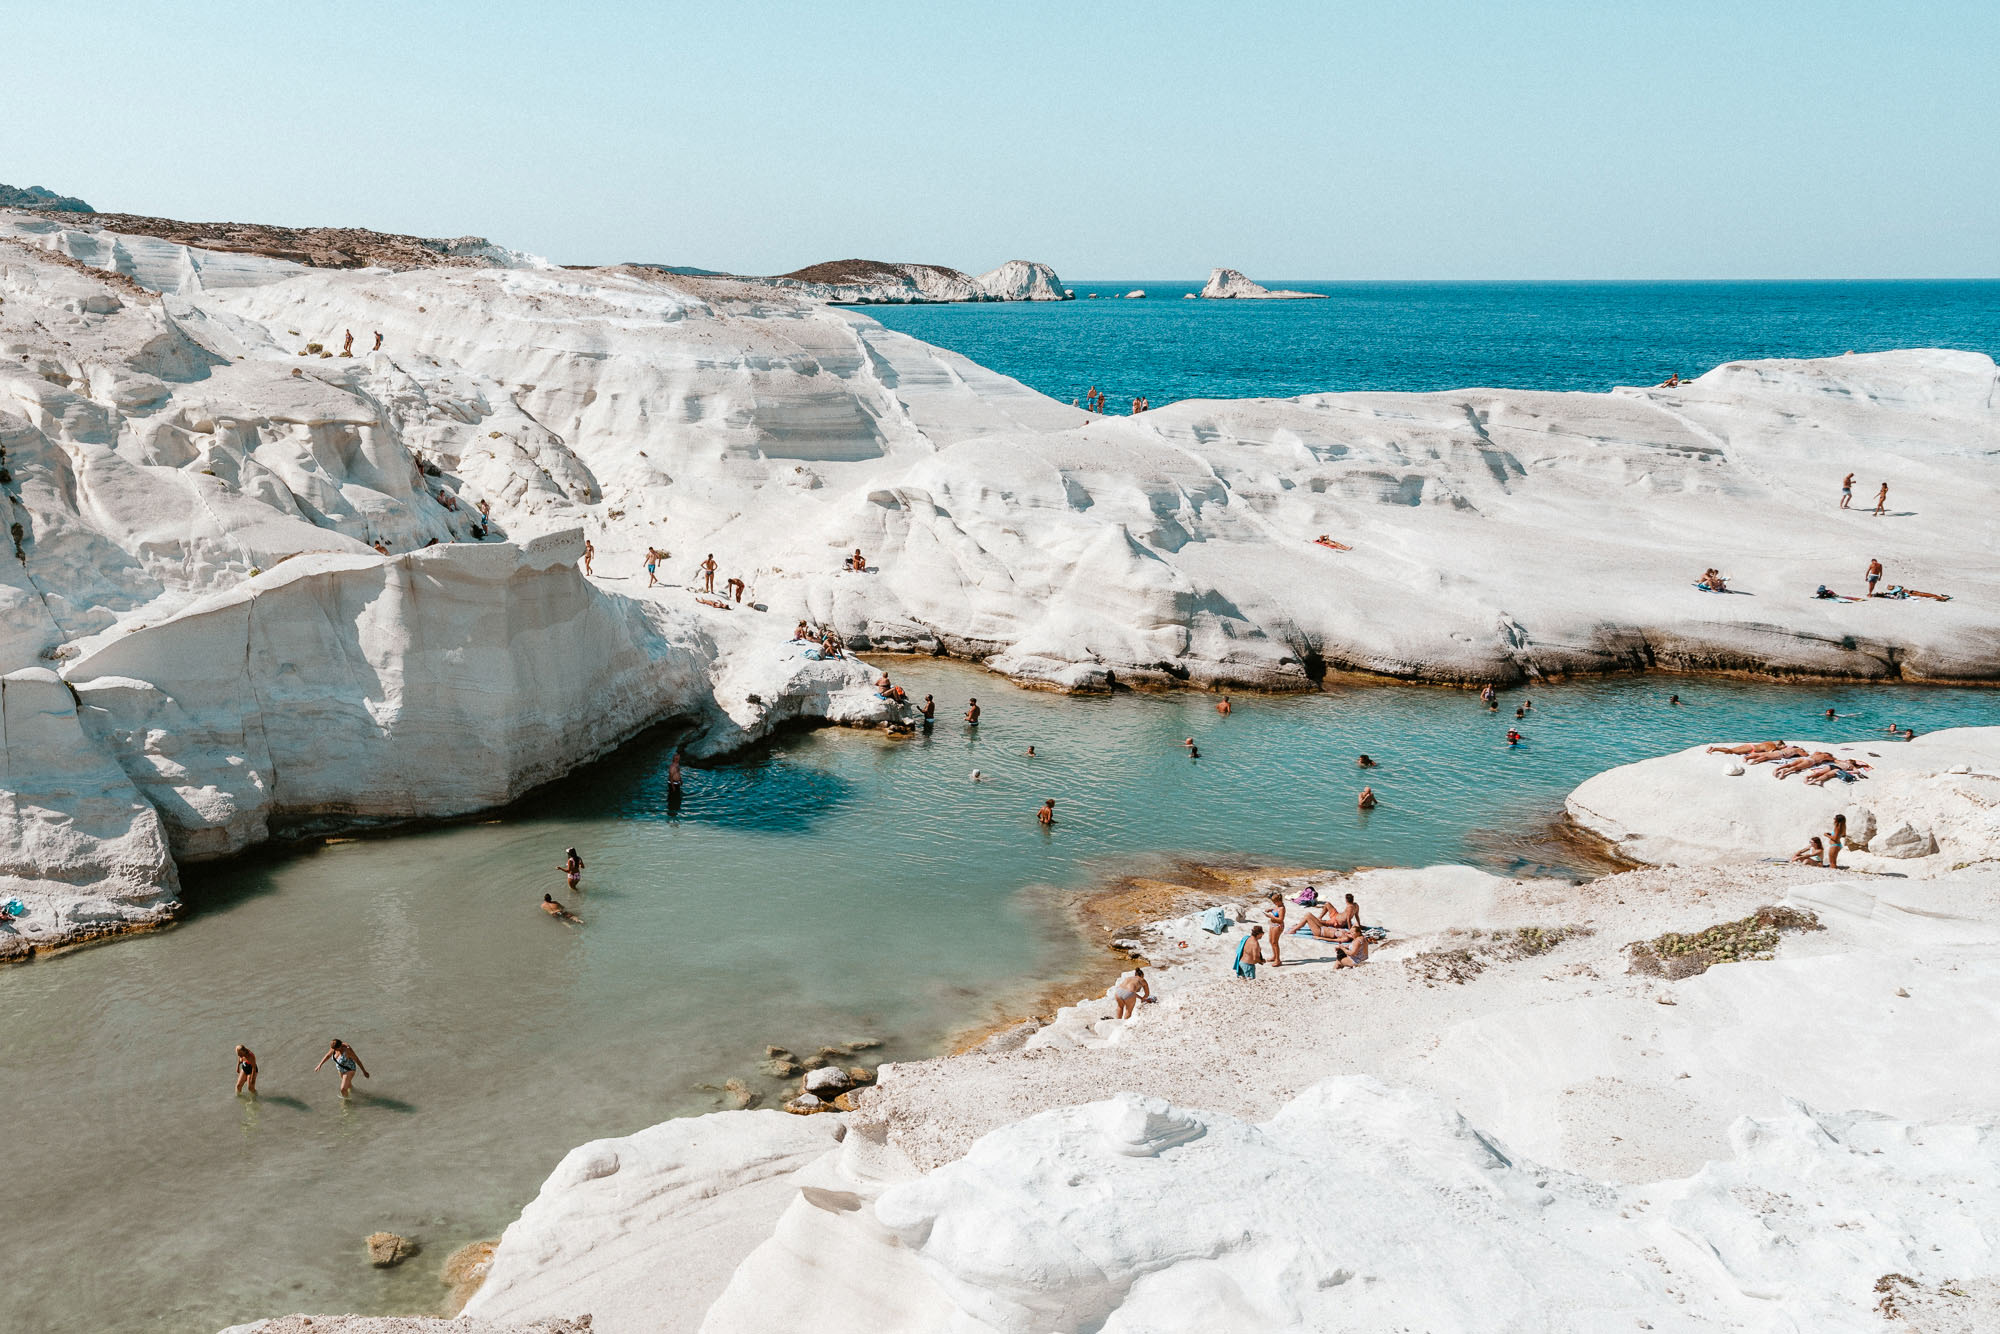 TMTM (8 hours): [Milos] The Highlights of Milos Private Day Tour